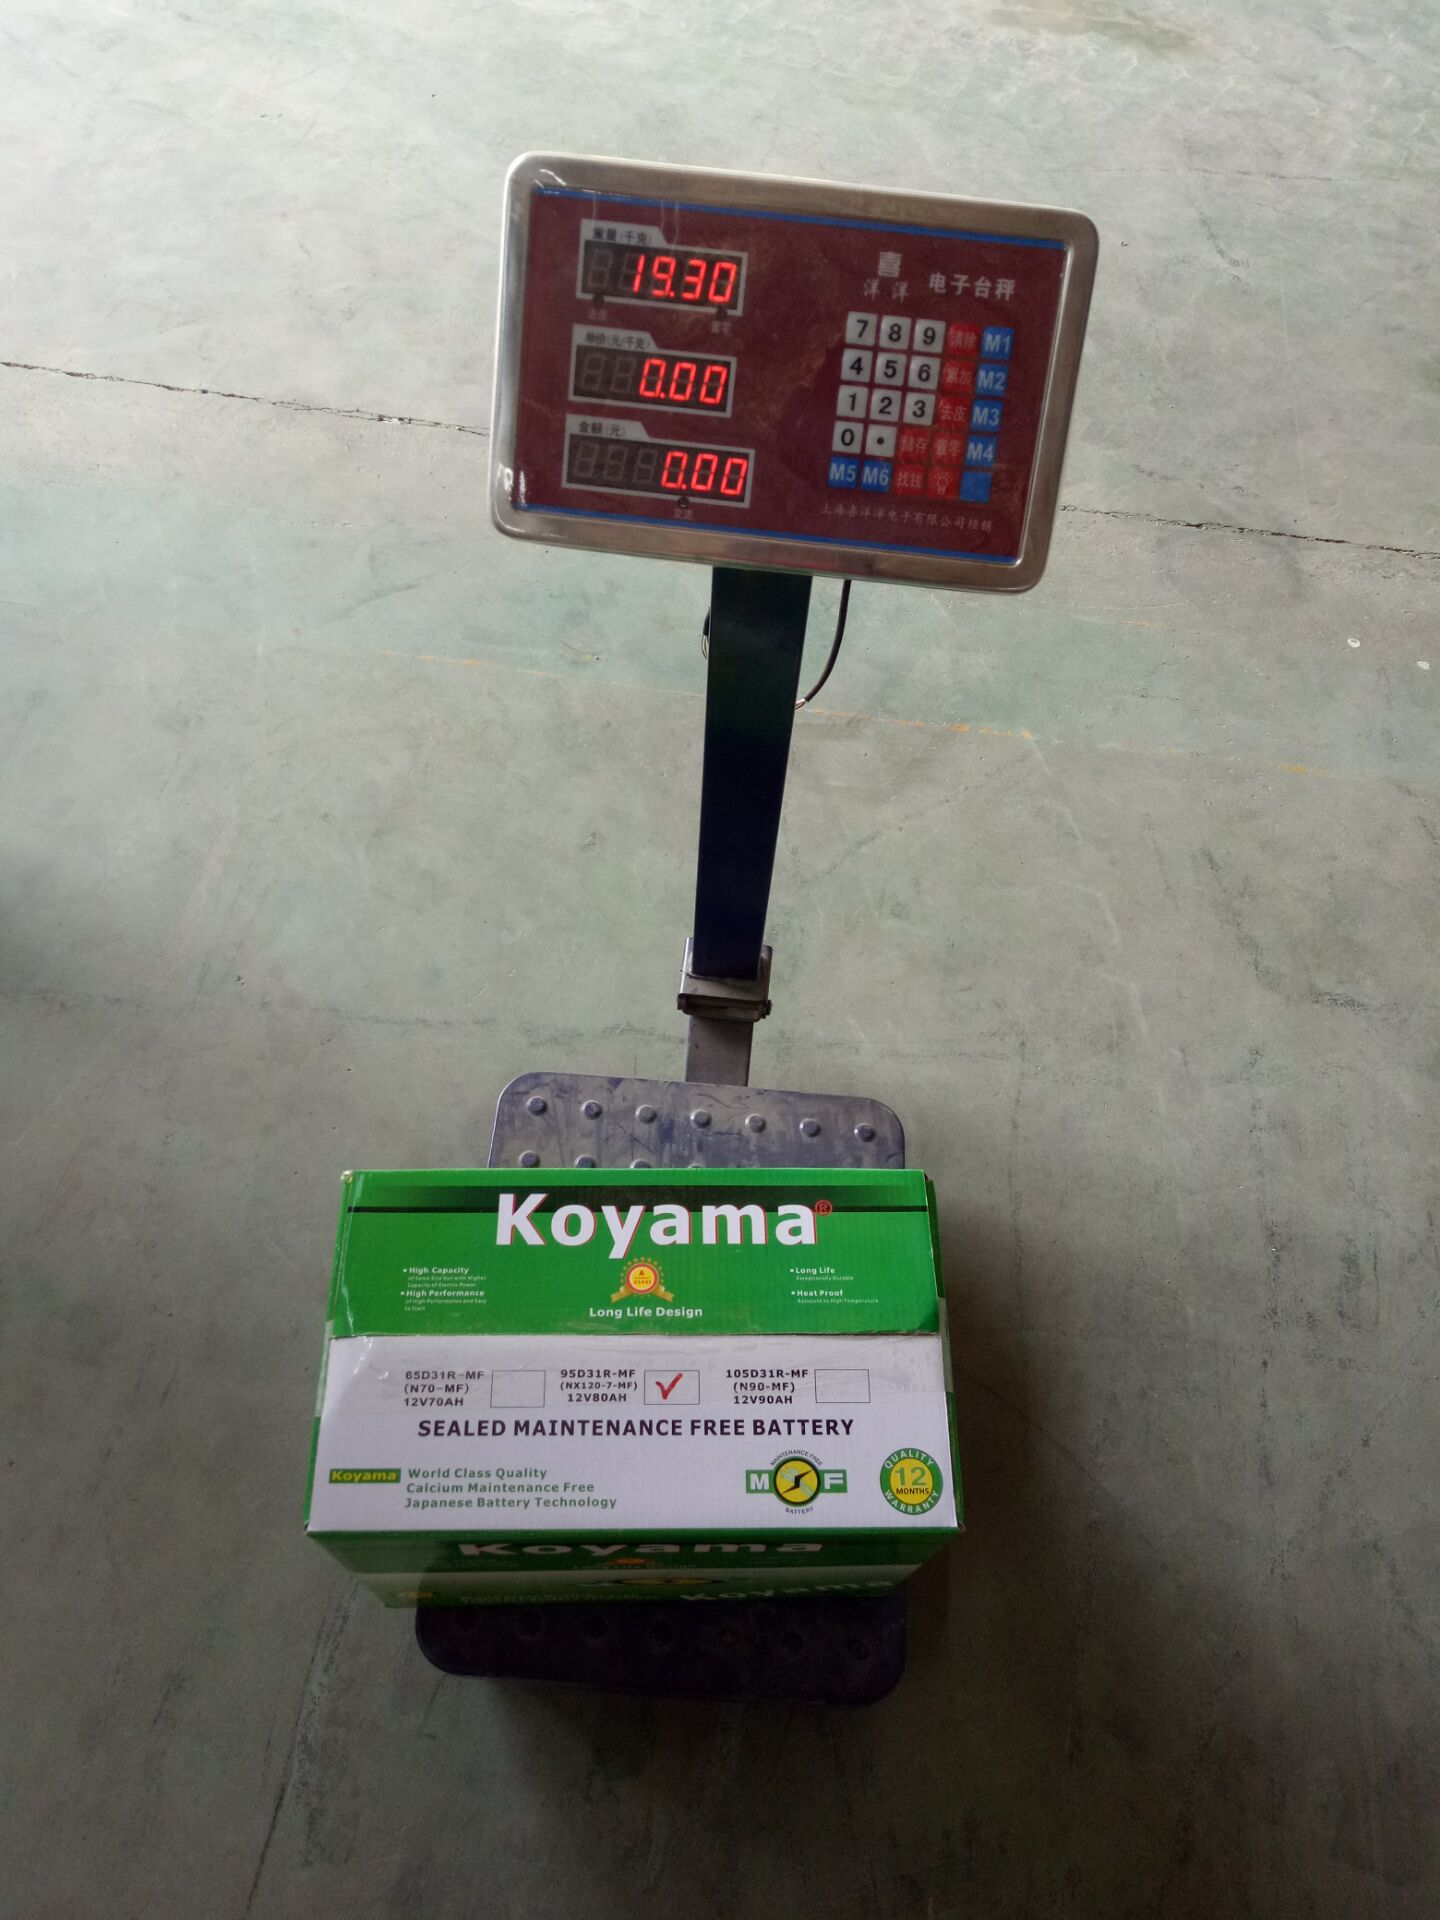 NEW ! Koyama Silver Power Lead Calcium Maintenance Free Car Battery 95D31R(NX120-7MF)